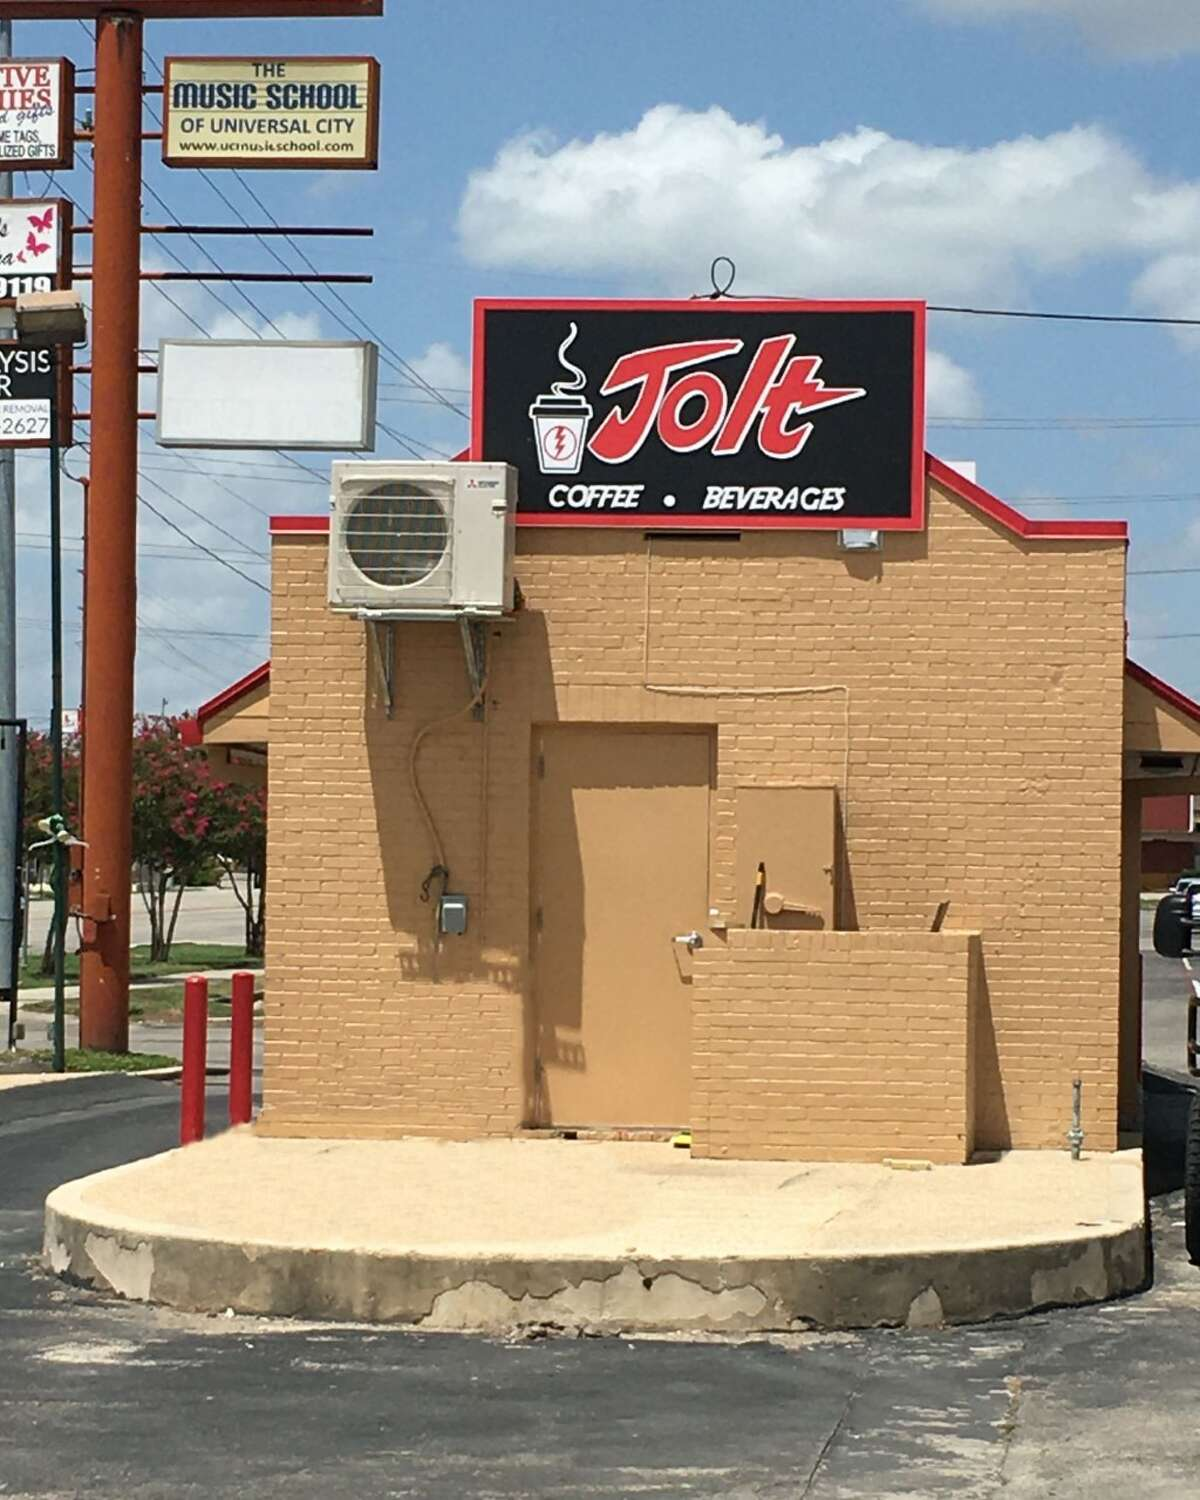 The drive-thru shops sell smoothies, coffee, shakes and more. A customer favorite is the Jolt signature drink, which is a slightly sweet blend of milk and espresso. Jolt Coffee and Beverage also sells muffin tops and granola bars.